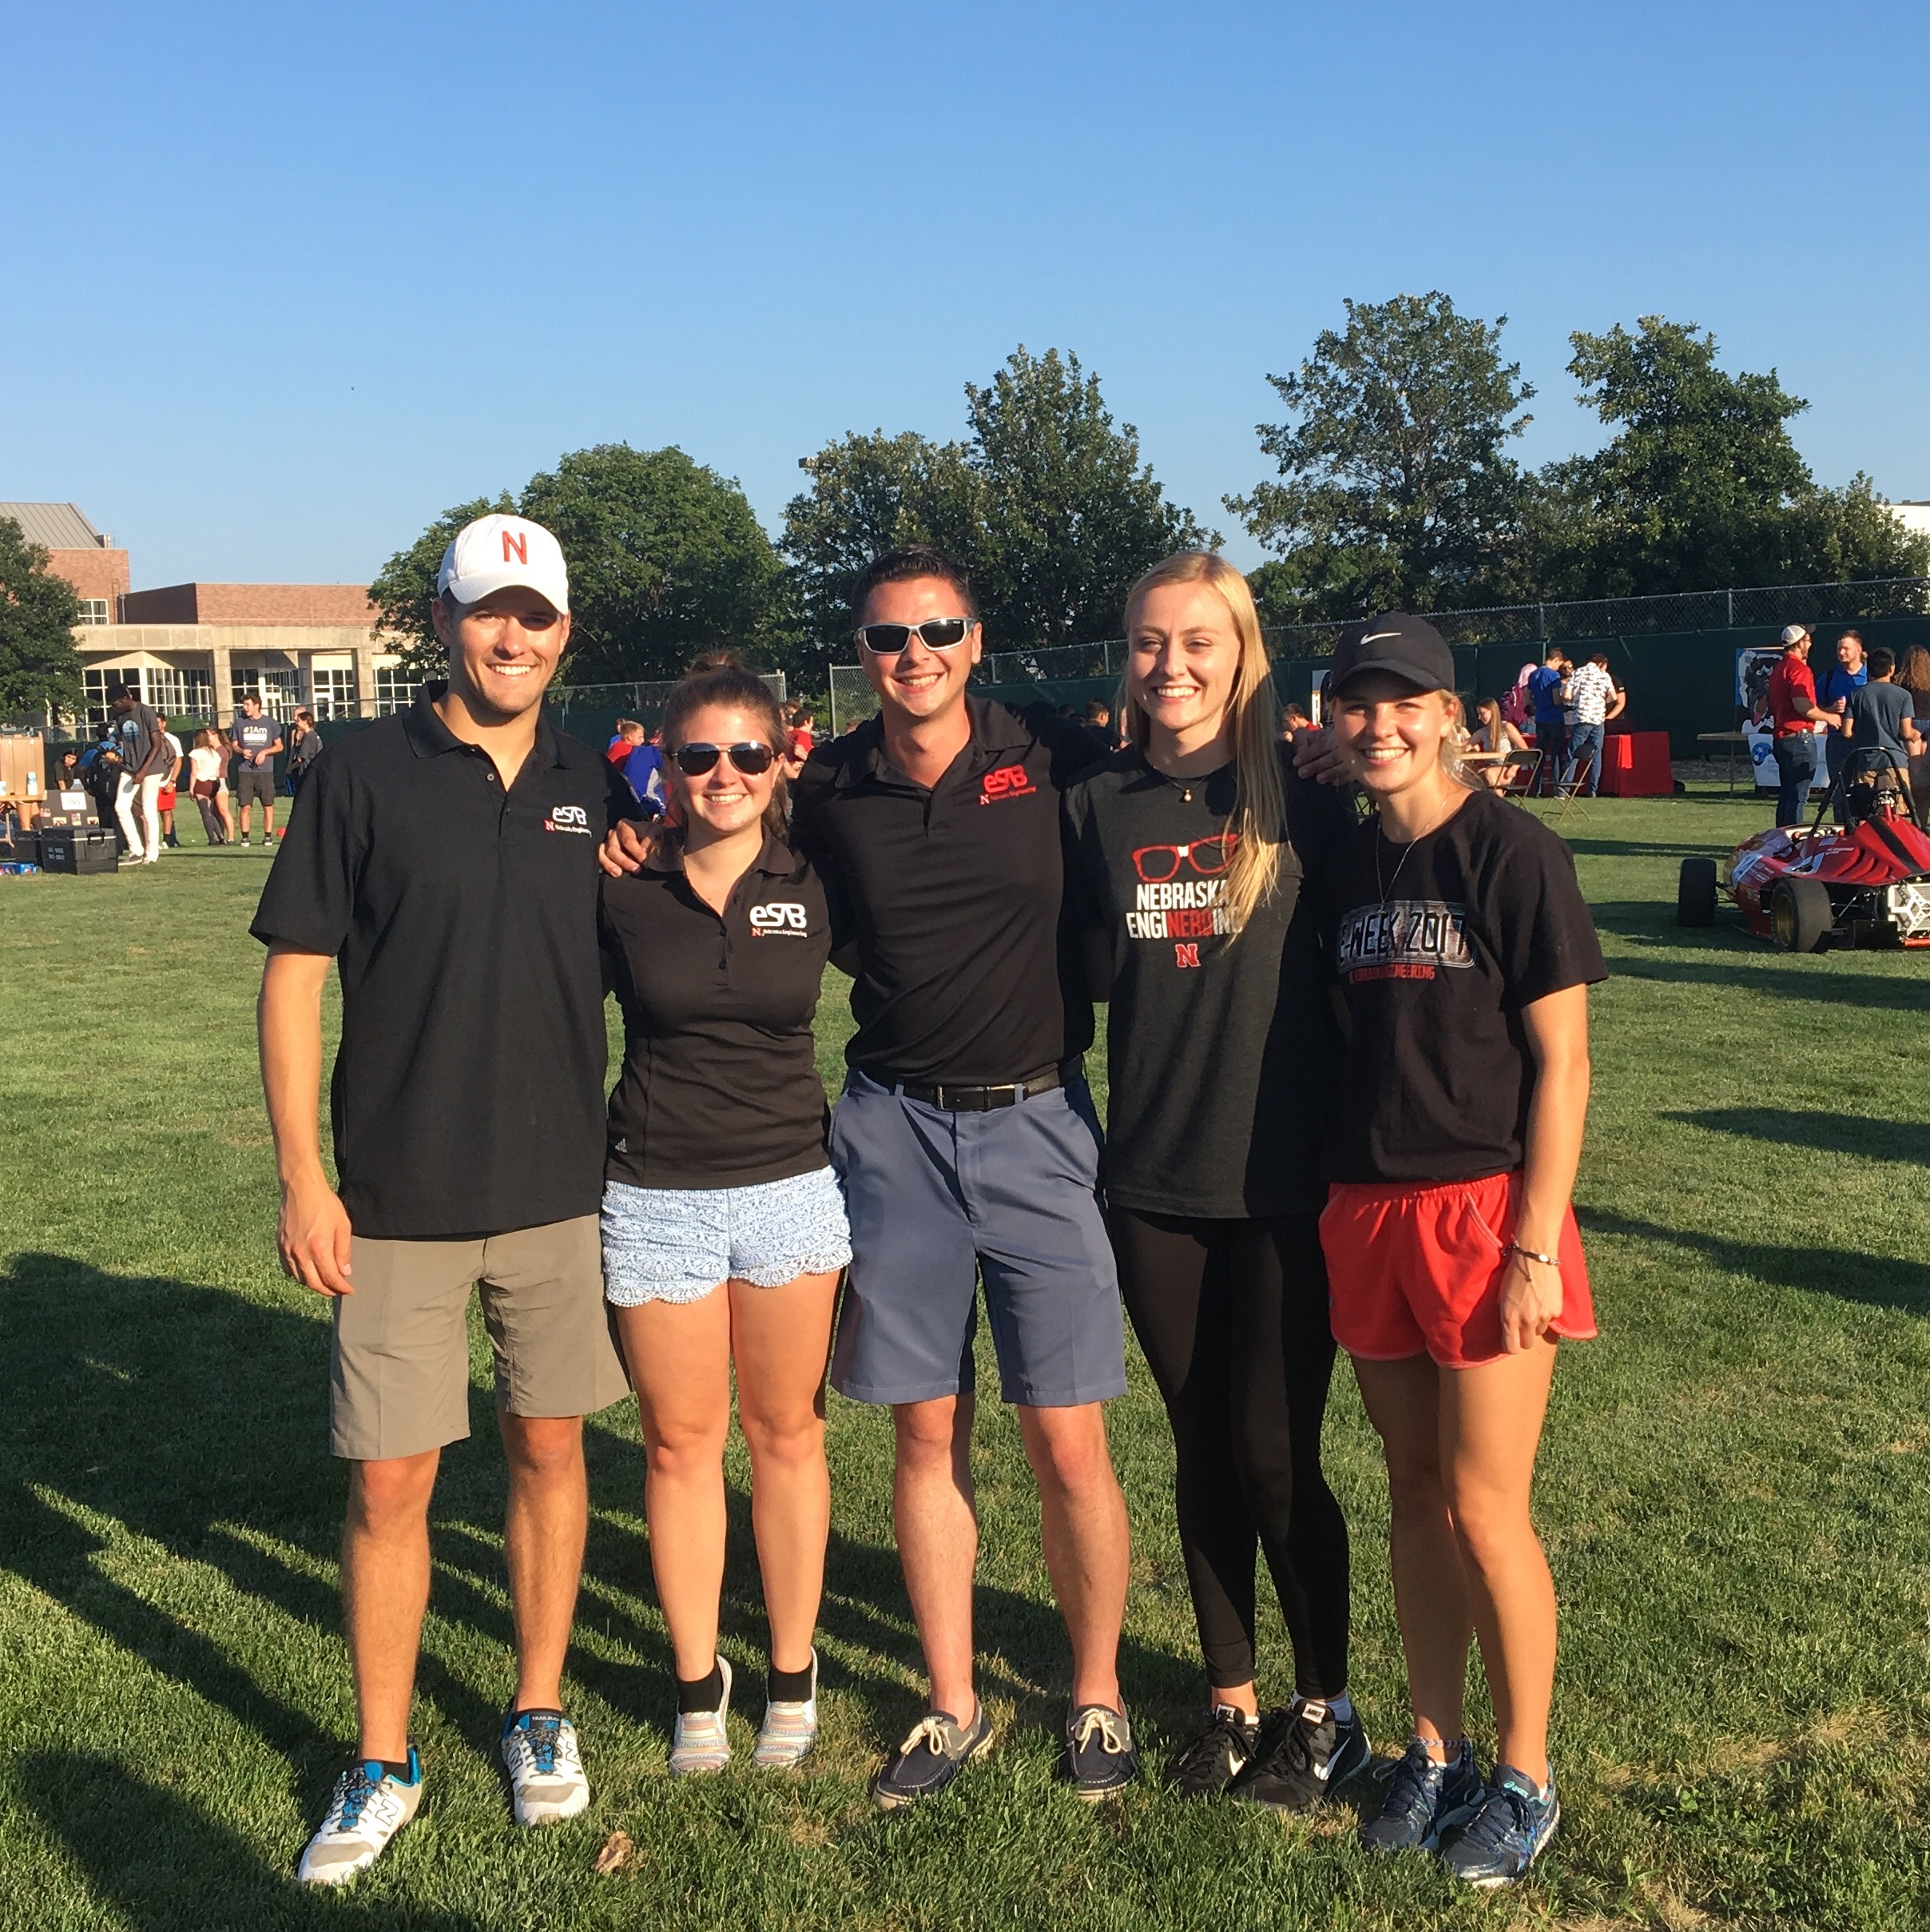 Exec at rock the block